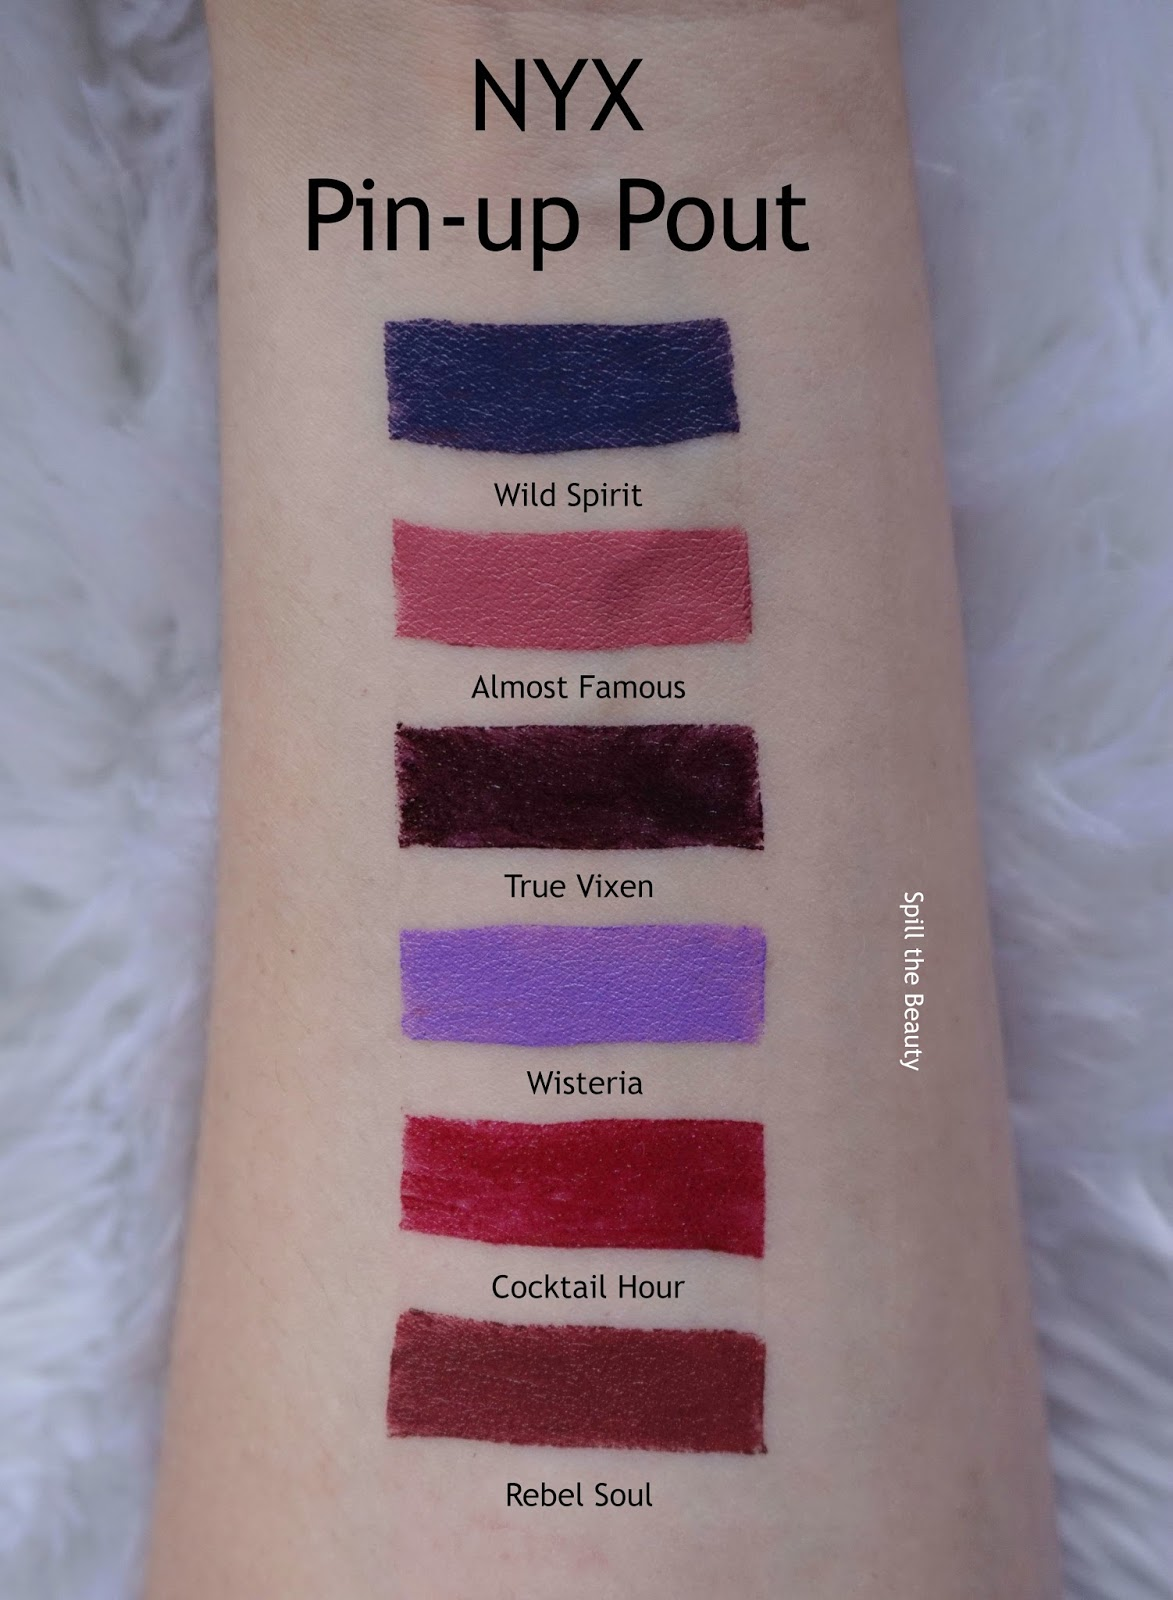 nyx pin up pout lipstick review swatches wild spirit almost famous true vixen wisteria cocktail hour rebel soul